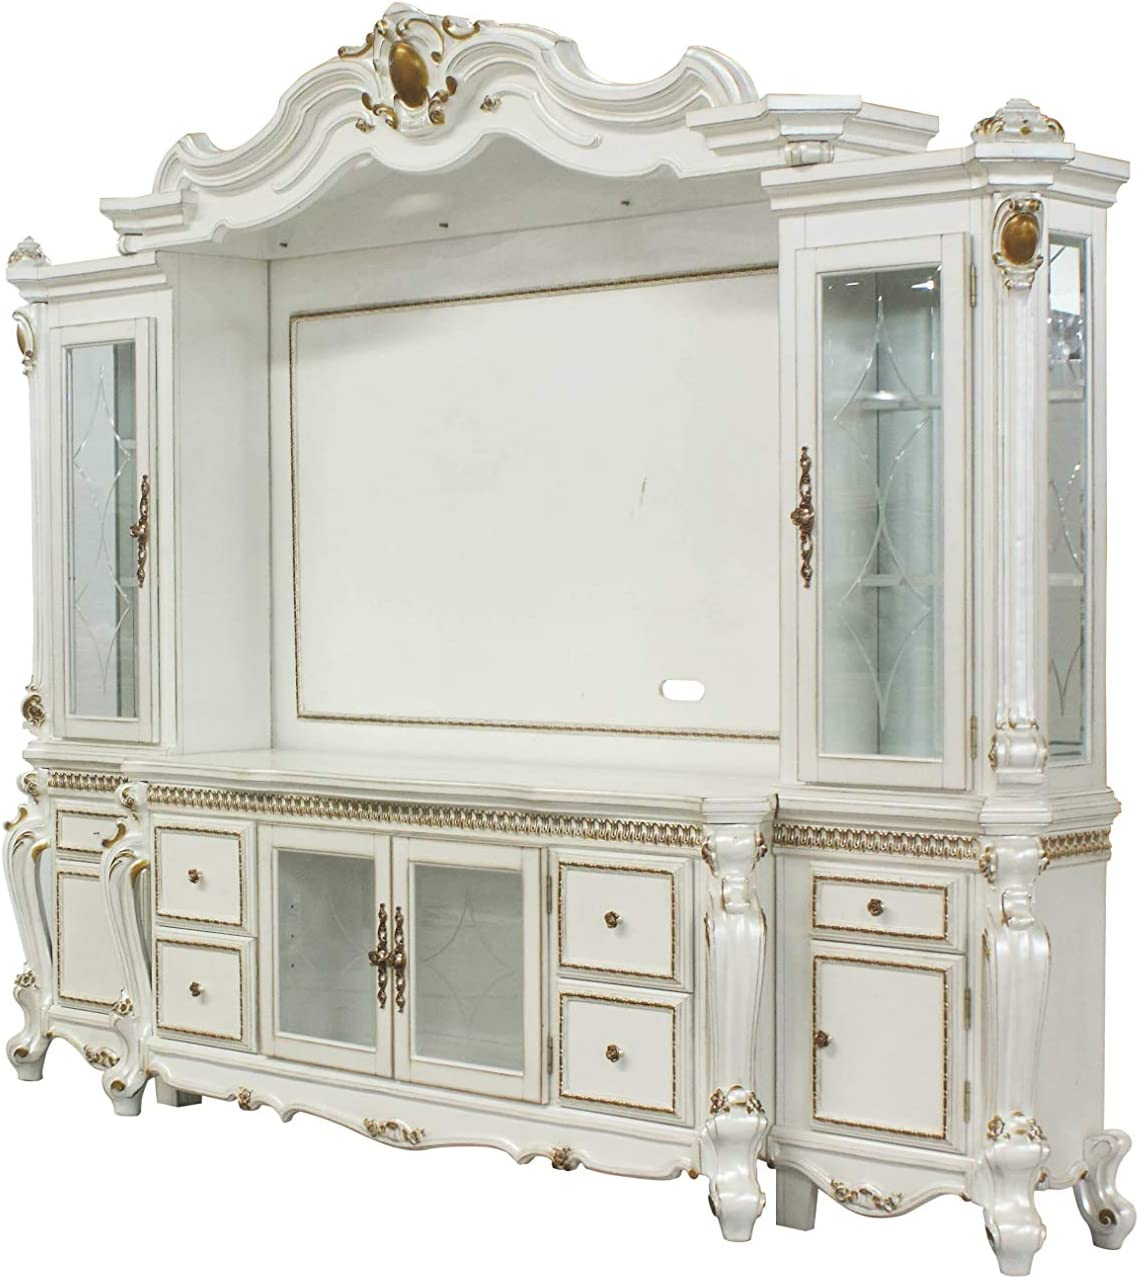 Acme Furniture Picardy 1 Entertainment Center, Antique Pearl